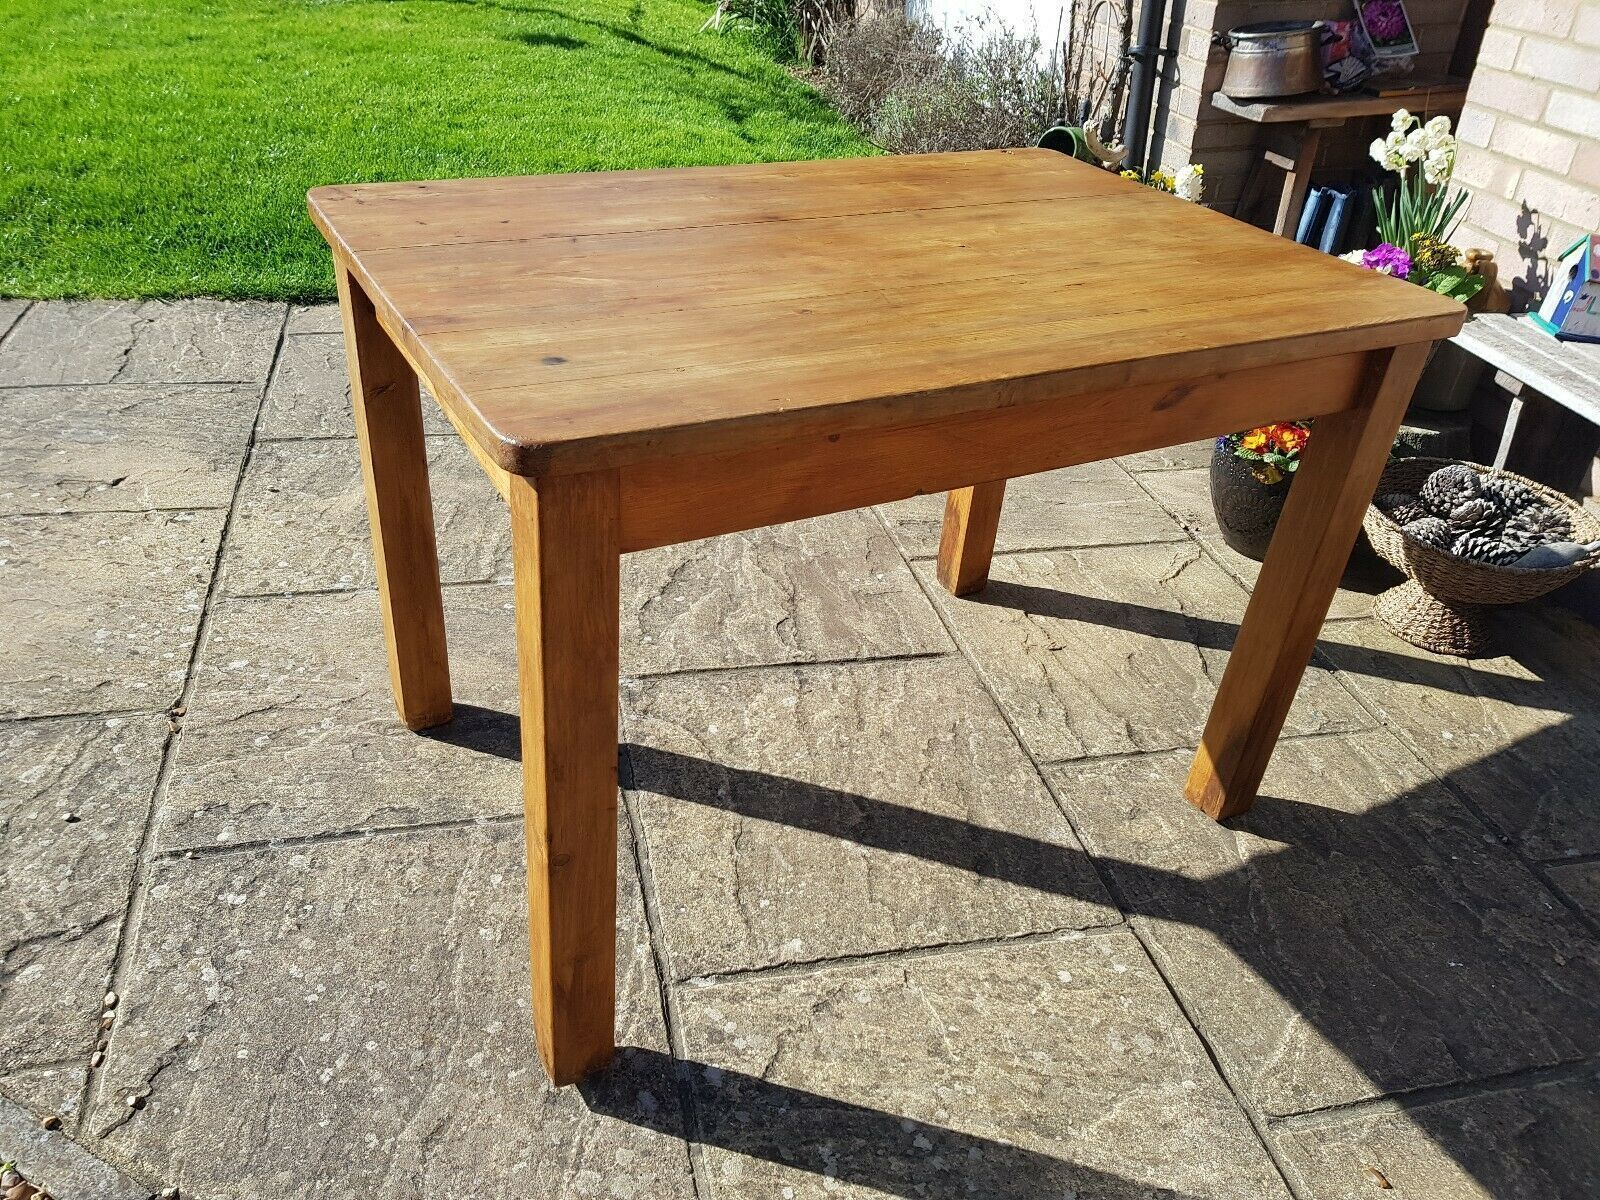 Vintage Pine Kitchen Table French Country Farmhouse Rustic Delivery Can Be  Arran   vinterior.co